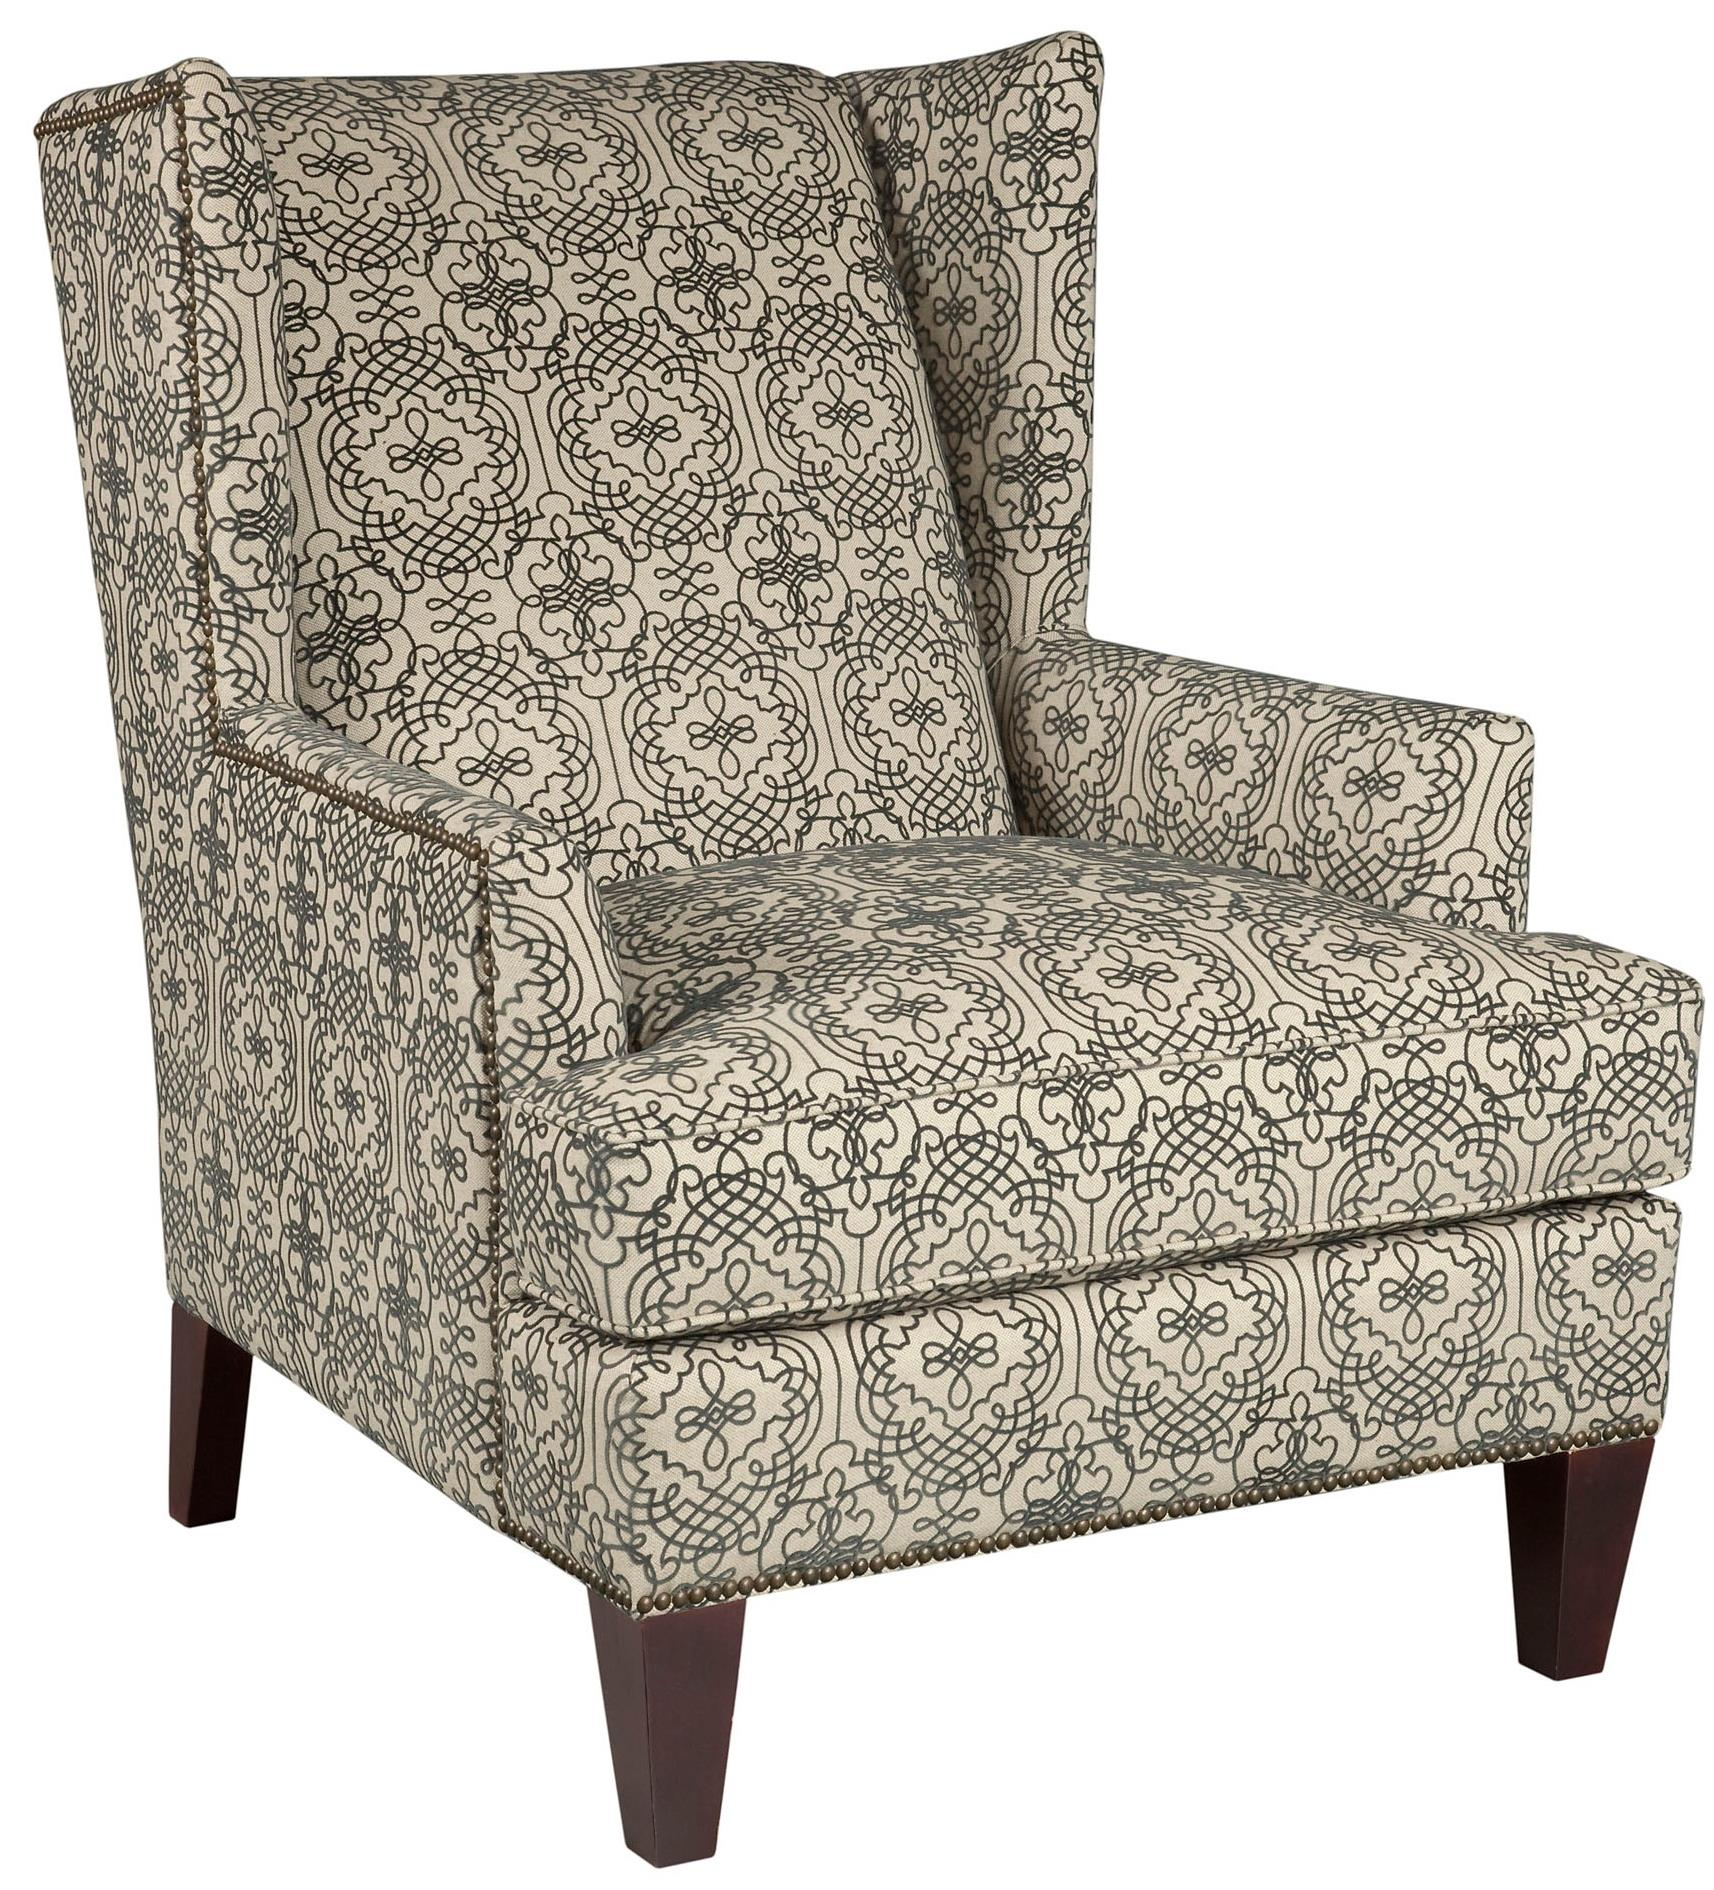 Broyhill Furniture Accent Chairs and Ottomans  Lauren Chair - Item Number: 9039-0-8860-95